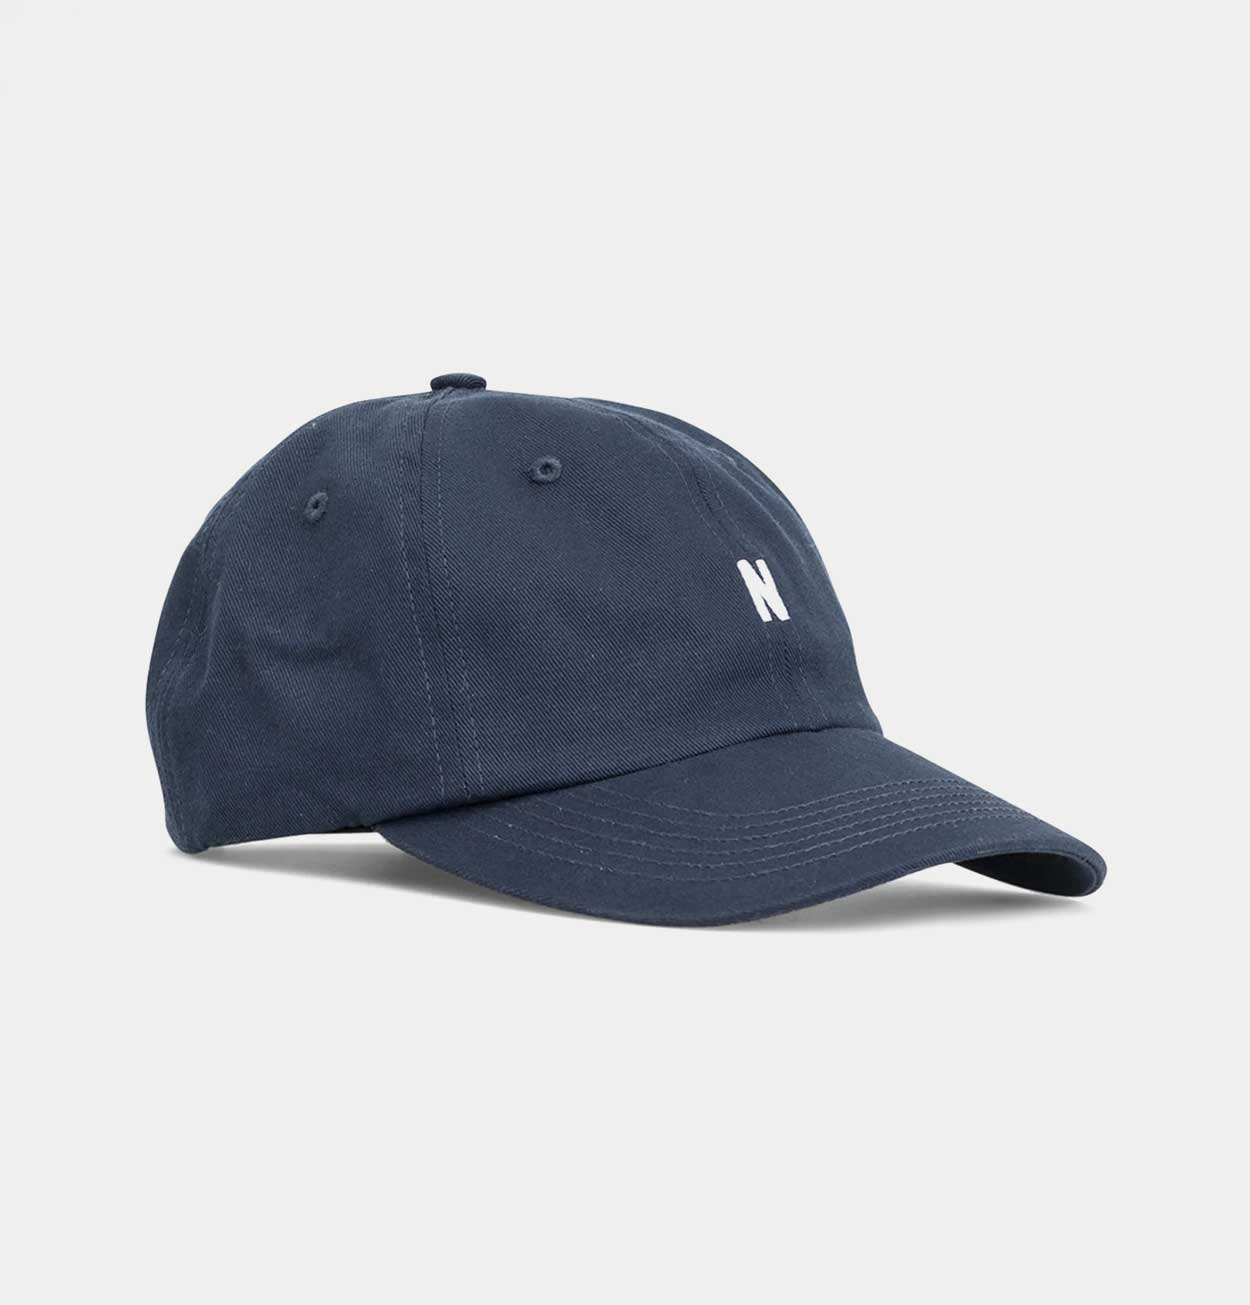 Norse Projects Twill Sports Cap – Dark Navy